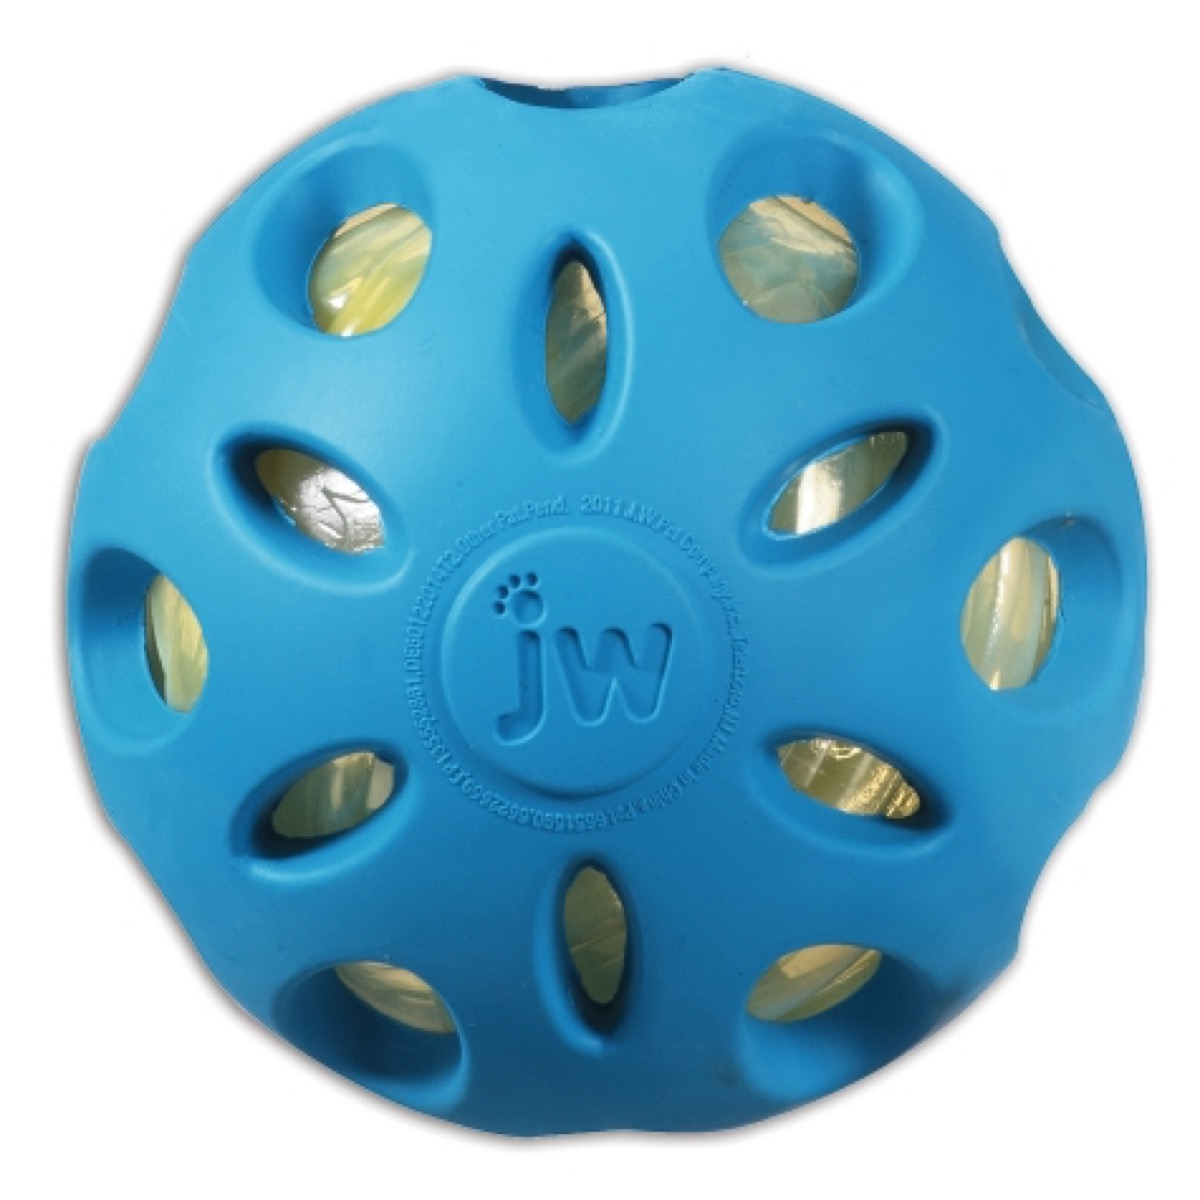 blue ball with treats inside, best chew toys for puppies